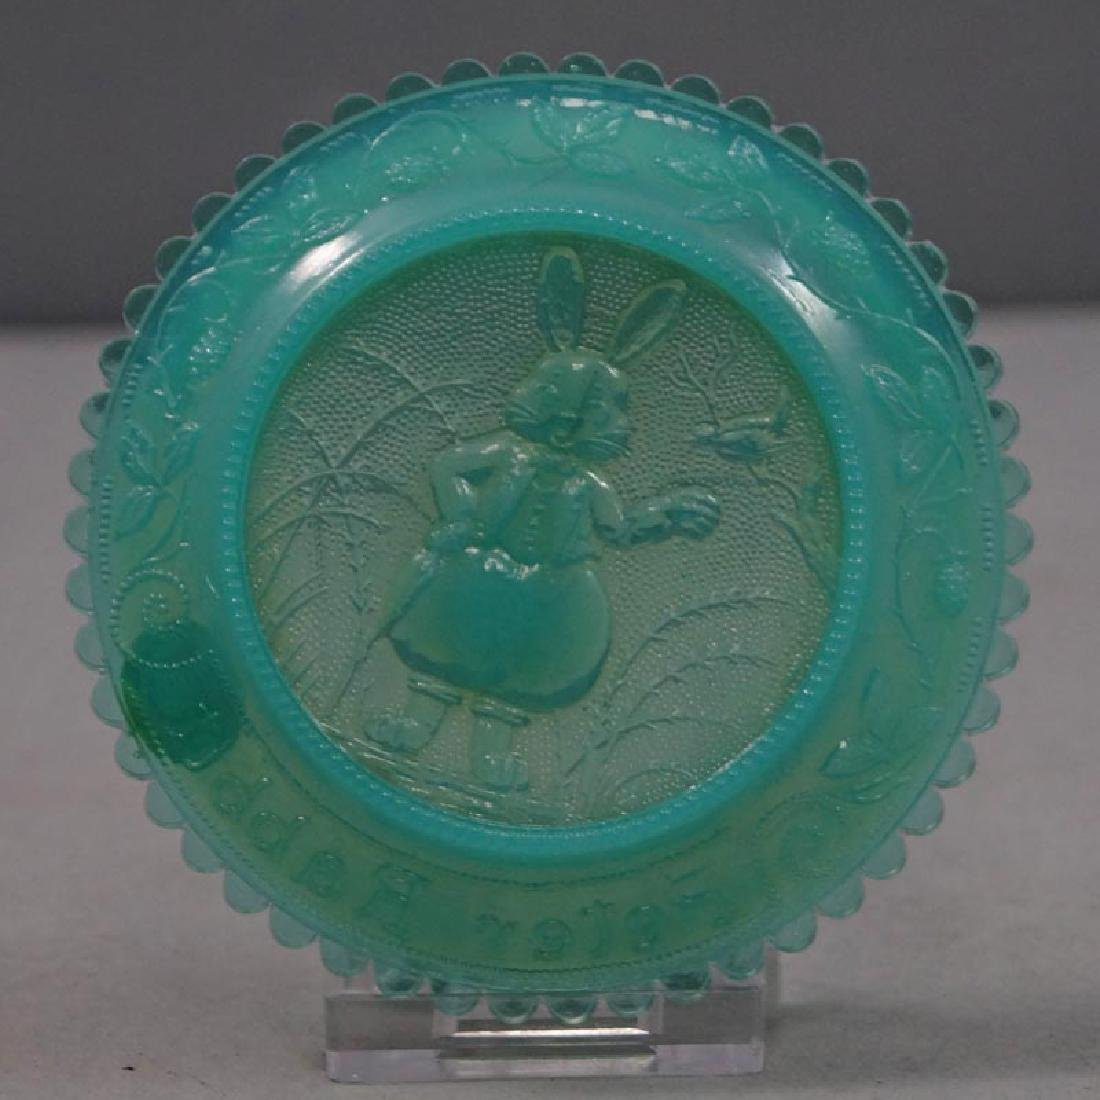 Peter Rabbit Pairpoint Cup Plate - 3